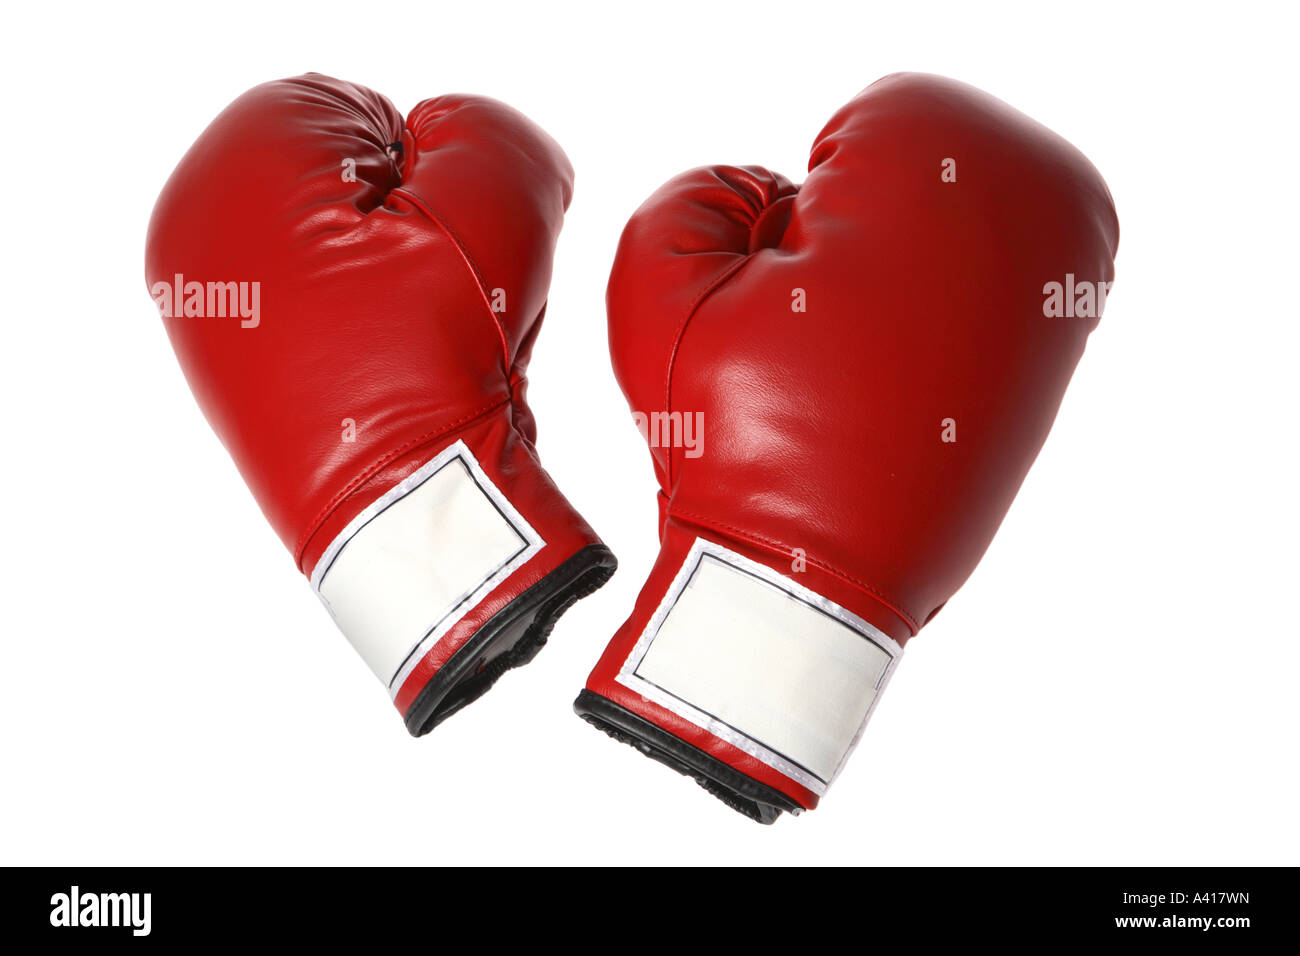 Boxing Gloves cut out on white background - Stock Image